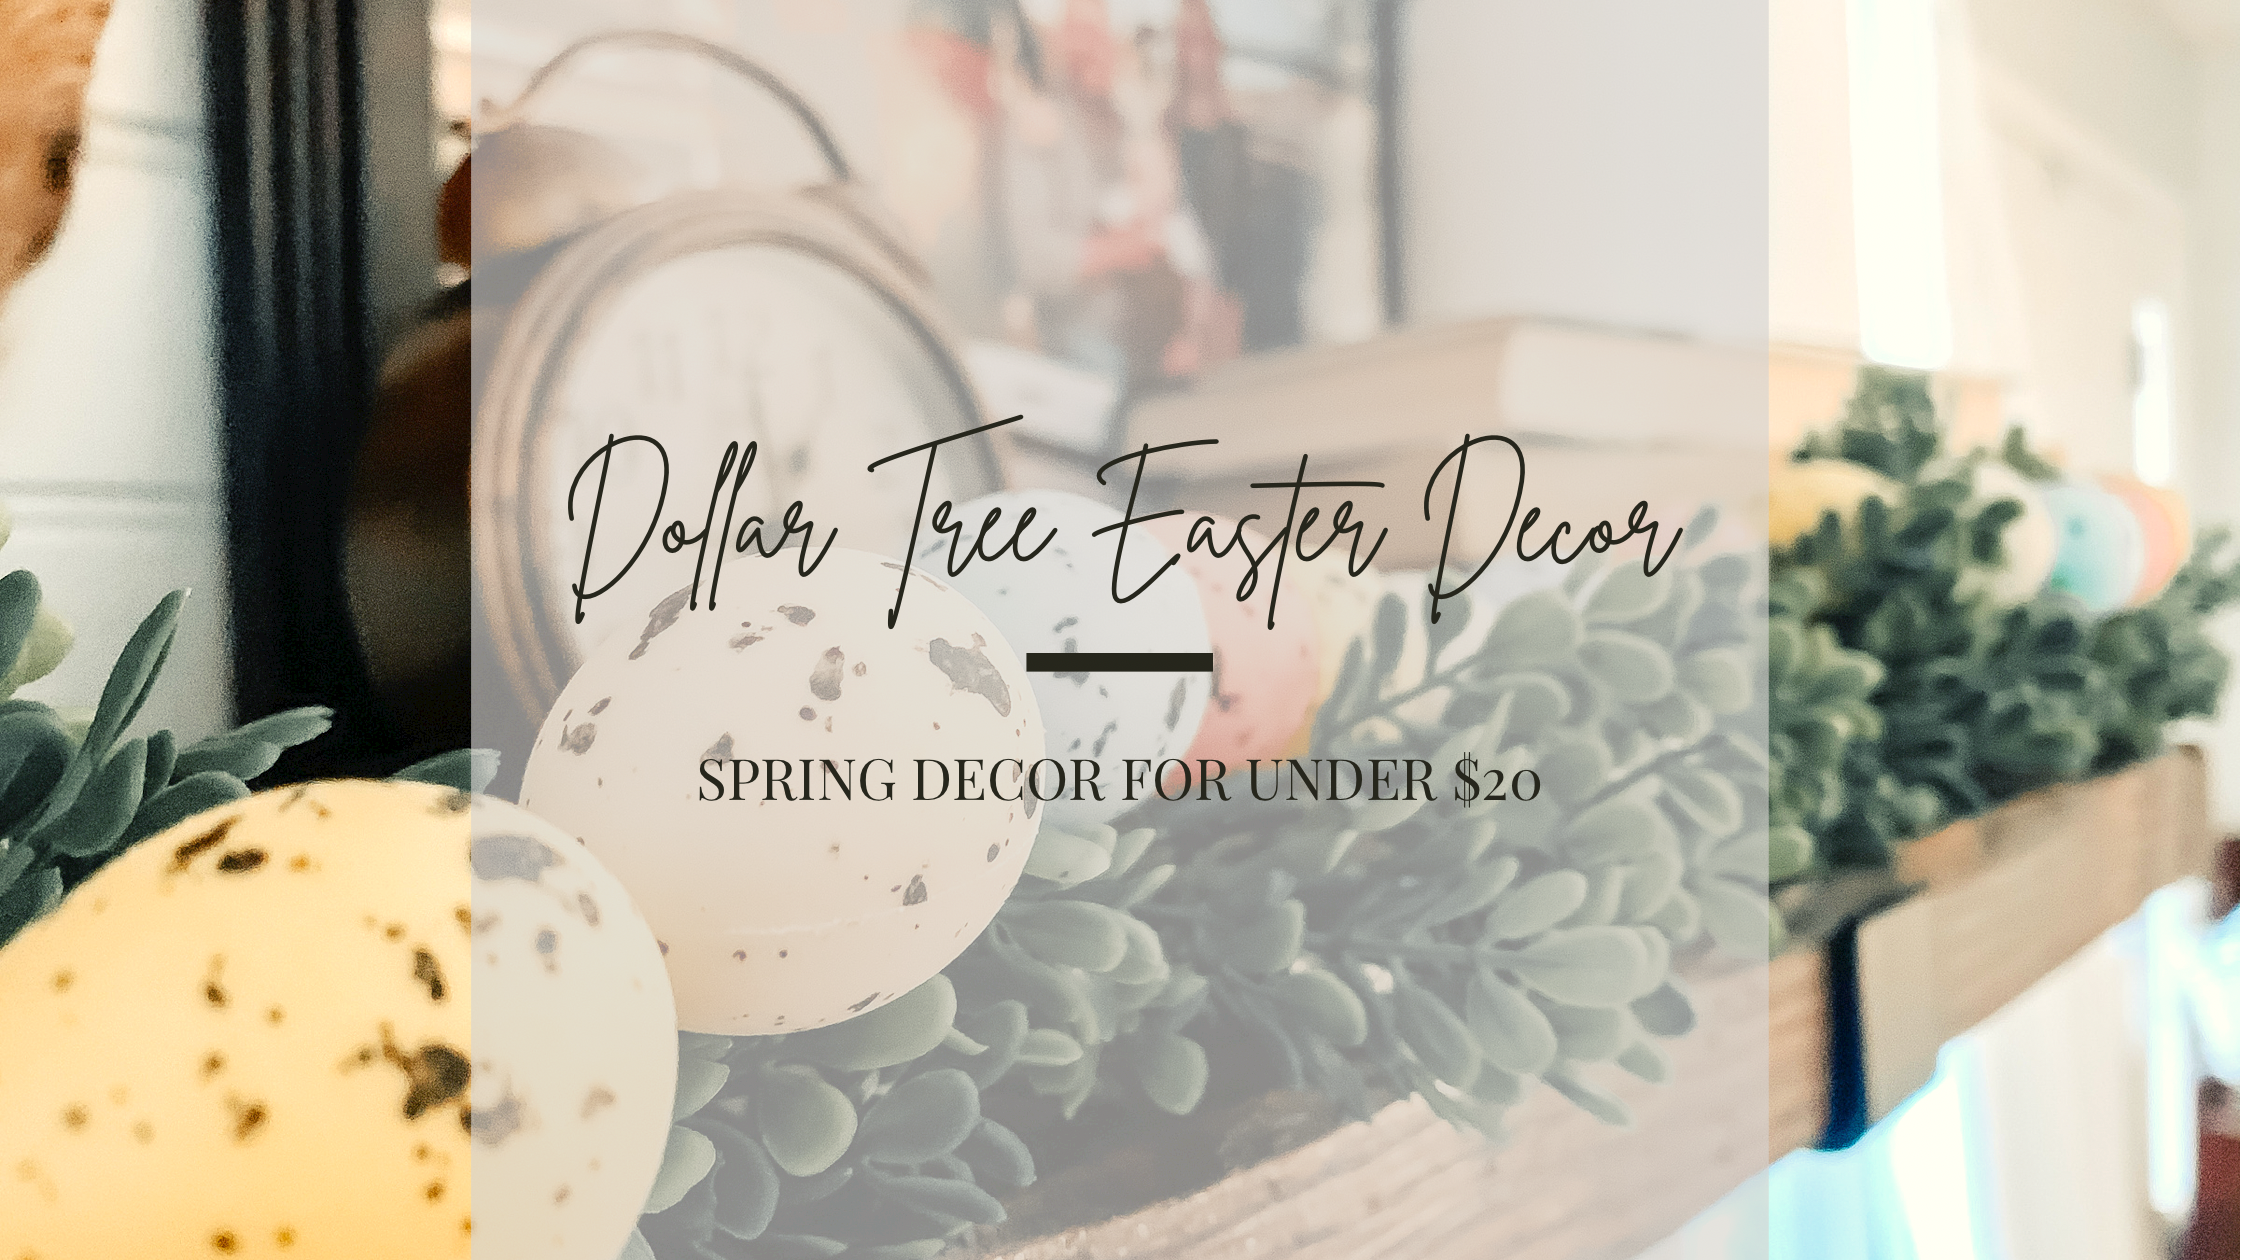 Dollar Tree Spring Decor